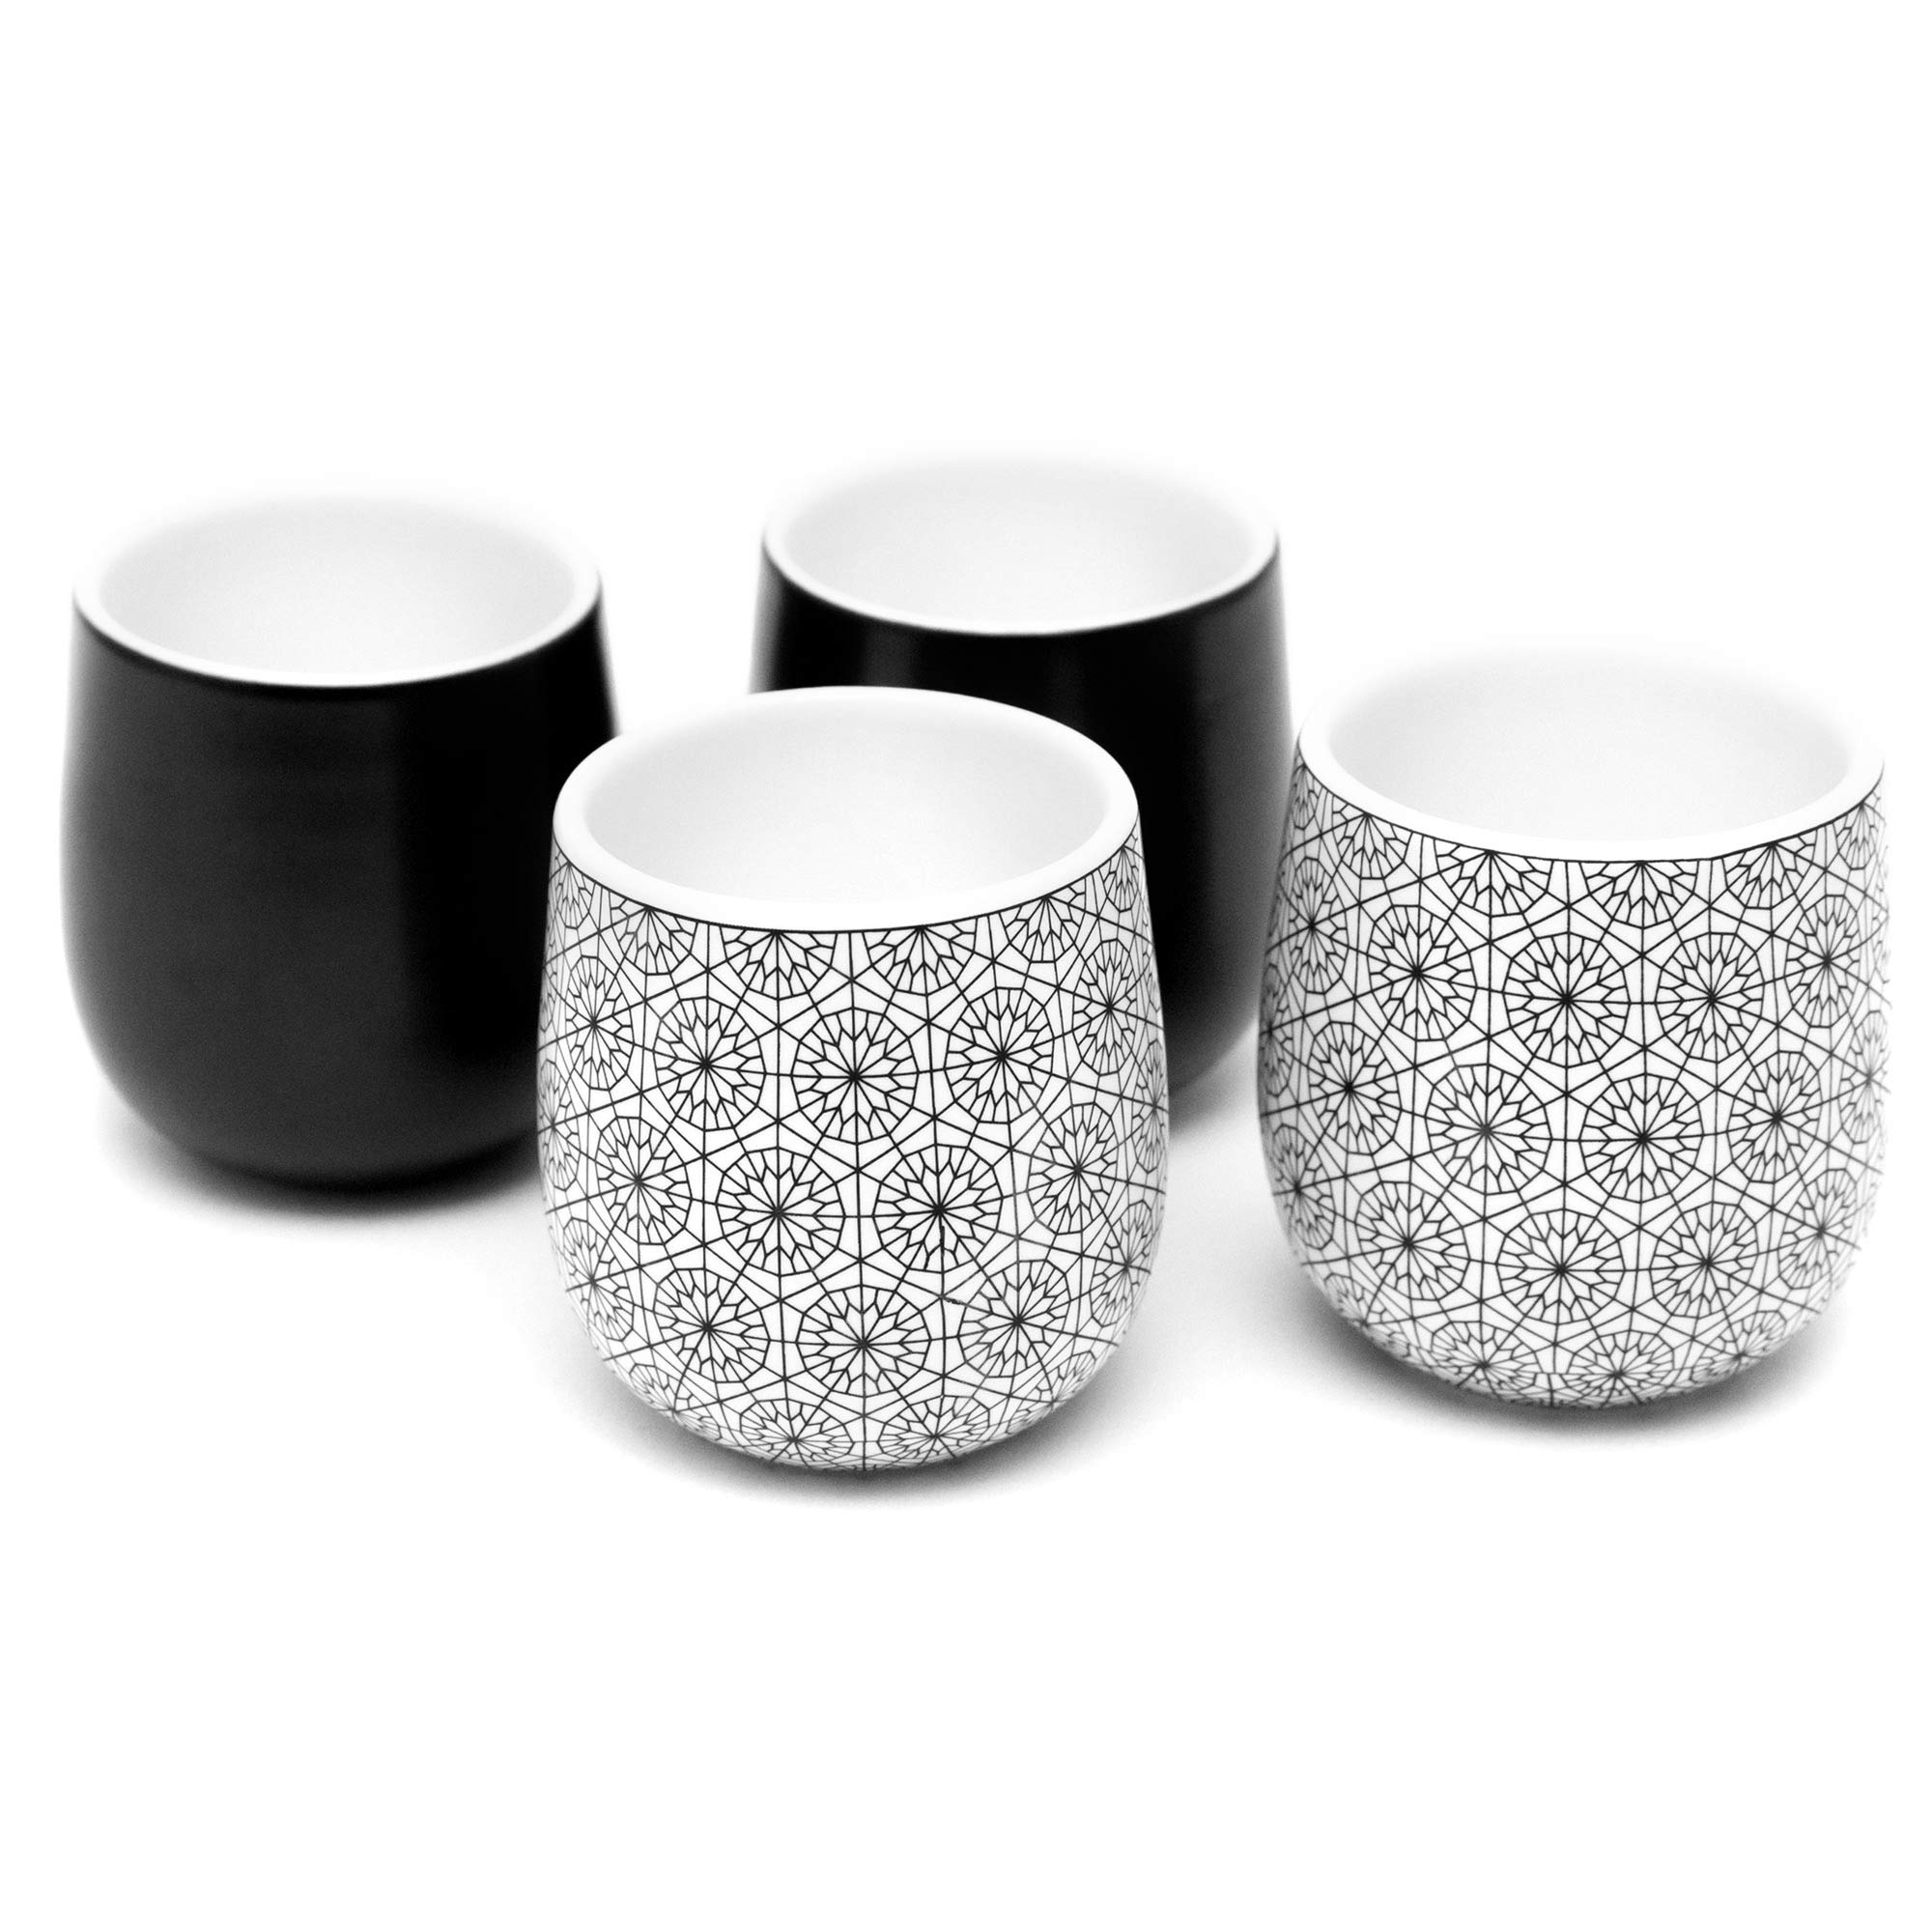 Double Walled Espresso Cups, Dobbelt Set of 4, 2 Oz - 2 Black and 2 circle Pattern - Insulated Ceramic Cups for Latte, Cappuccino, Tea - Modern, Contemporary, Art Deco Design - Box Set, by Kop & Hagen